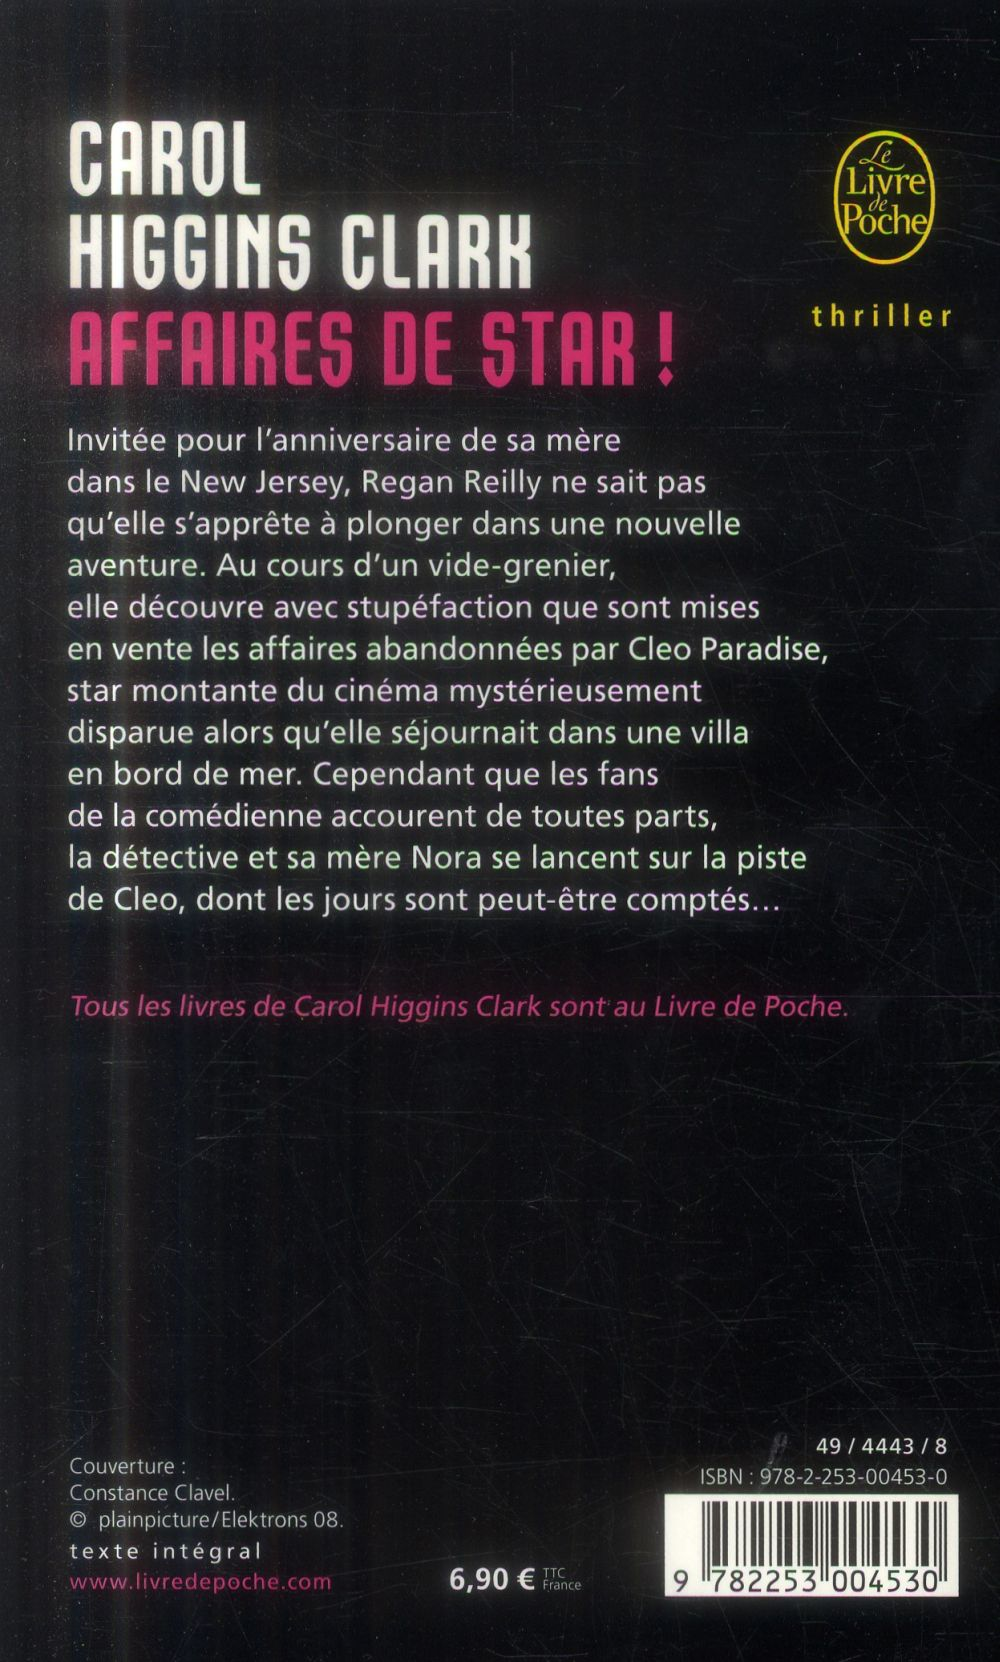 Affaires de star !